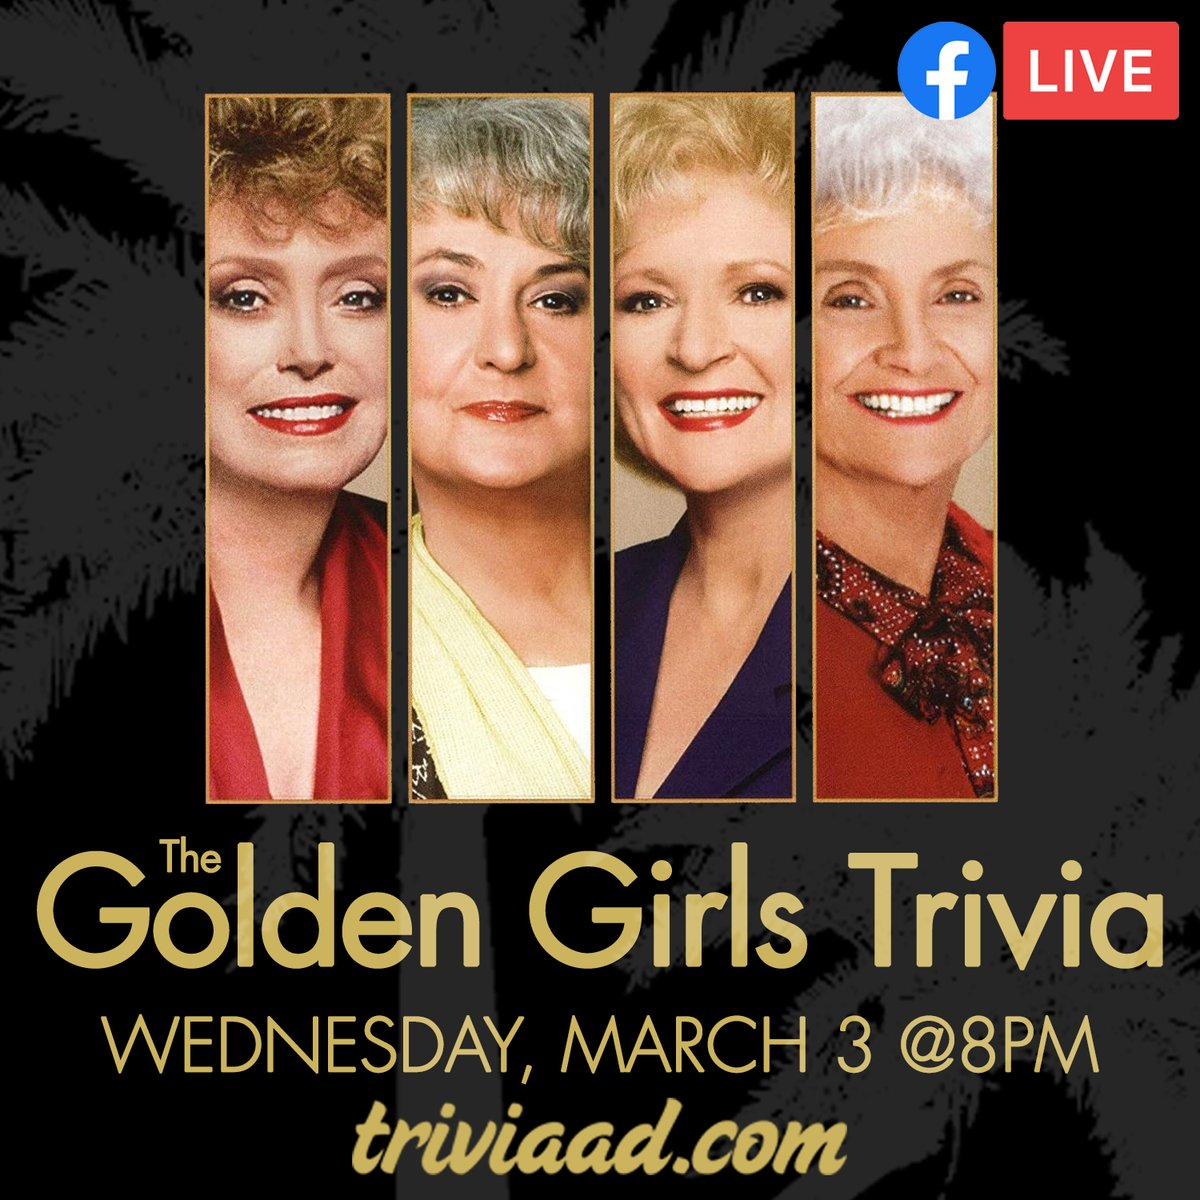 #TheGoldenGirls #Trivia via Facebook Live-Stream TOMORROW at 8pm ET. RSVP GOING on the Facebook event at;  #GoldenGirls #ThemedTrivia #FreeEvents #BettyWhite